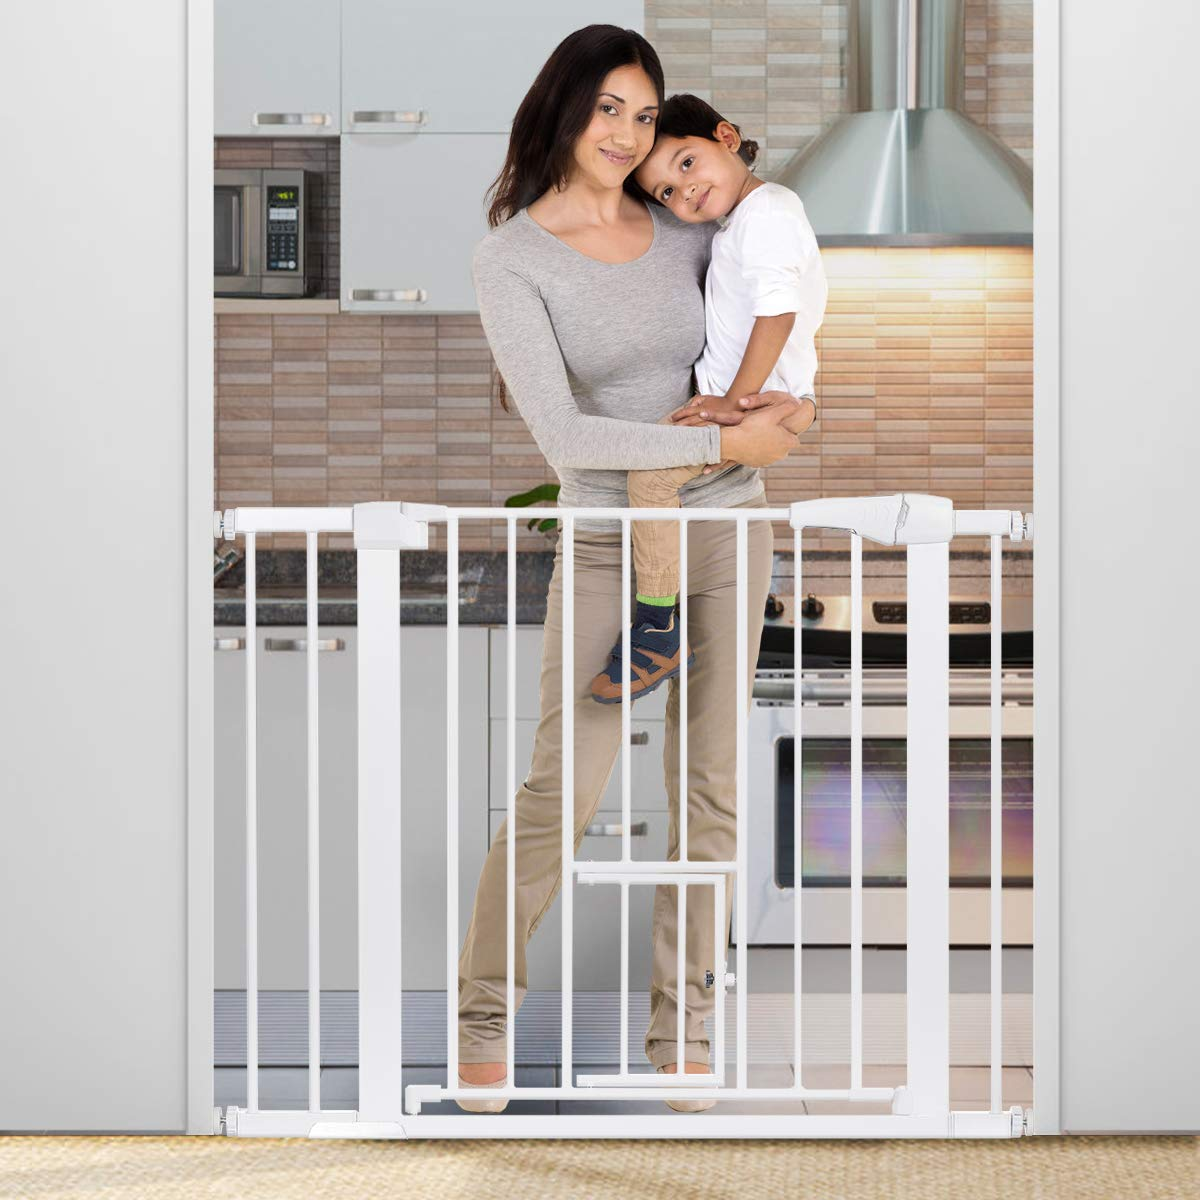 """40.5"""" Auto Close Safety Gate, KingSo Baby Gate Extra Wide 29.5""""-40.5'' Walk Thru with Pet Door for House Stairs Doorways Hallway. Include 4 Pressure Bolts, 4 Wall Cups, 2.75'' & 5.5'' Extension, White"""